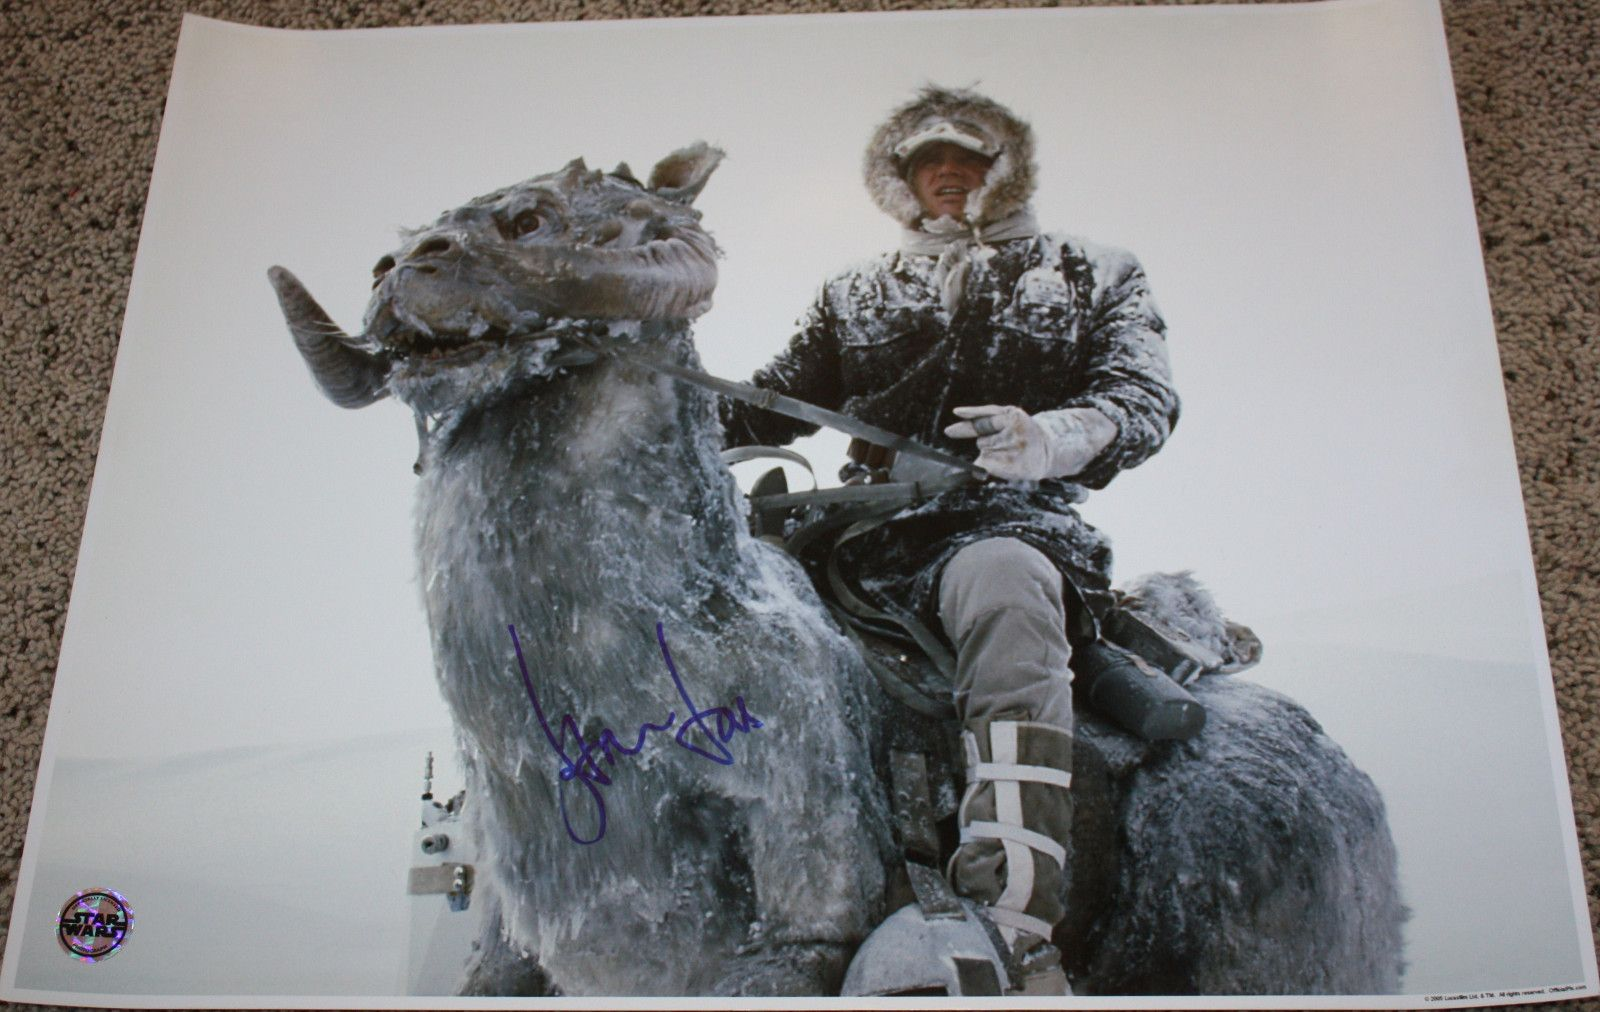 Harrison Ford - Star Wars - Han Solo - RARE SIGNED HUGE 16x20 - K9 w/ PROOF